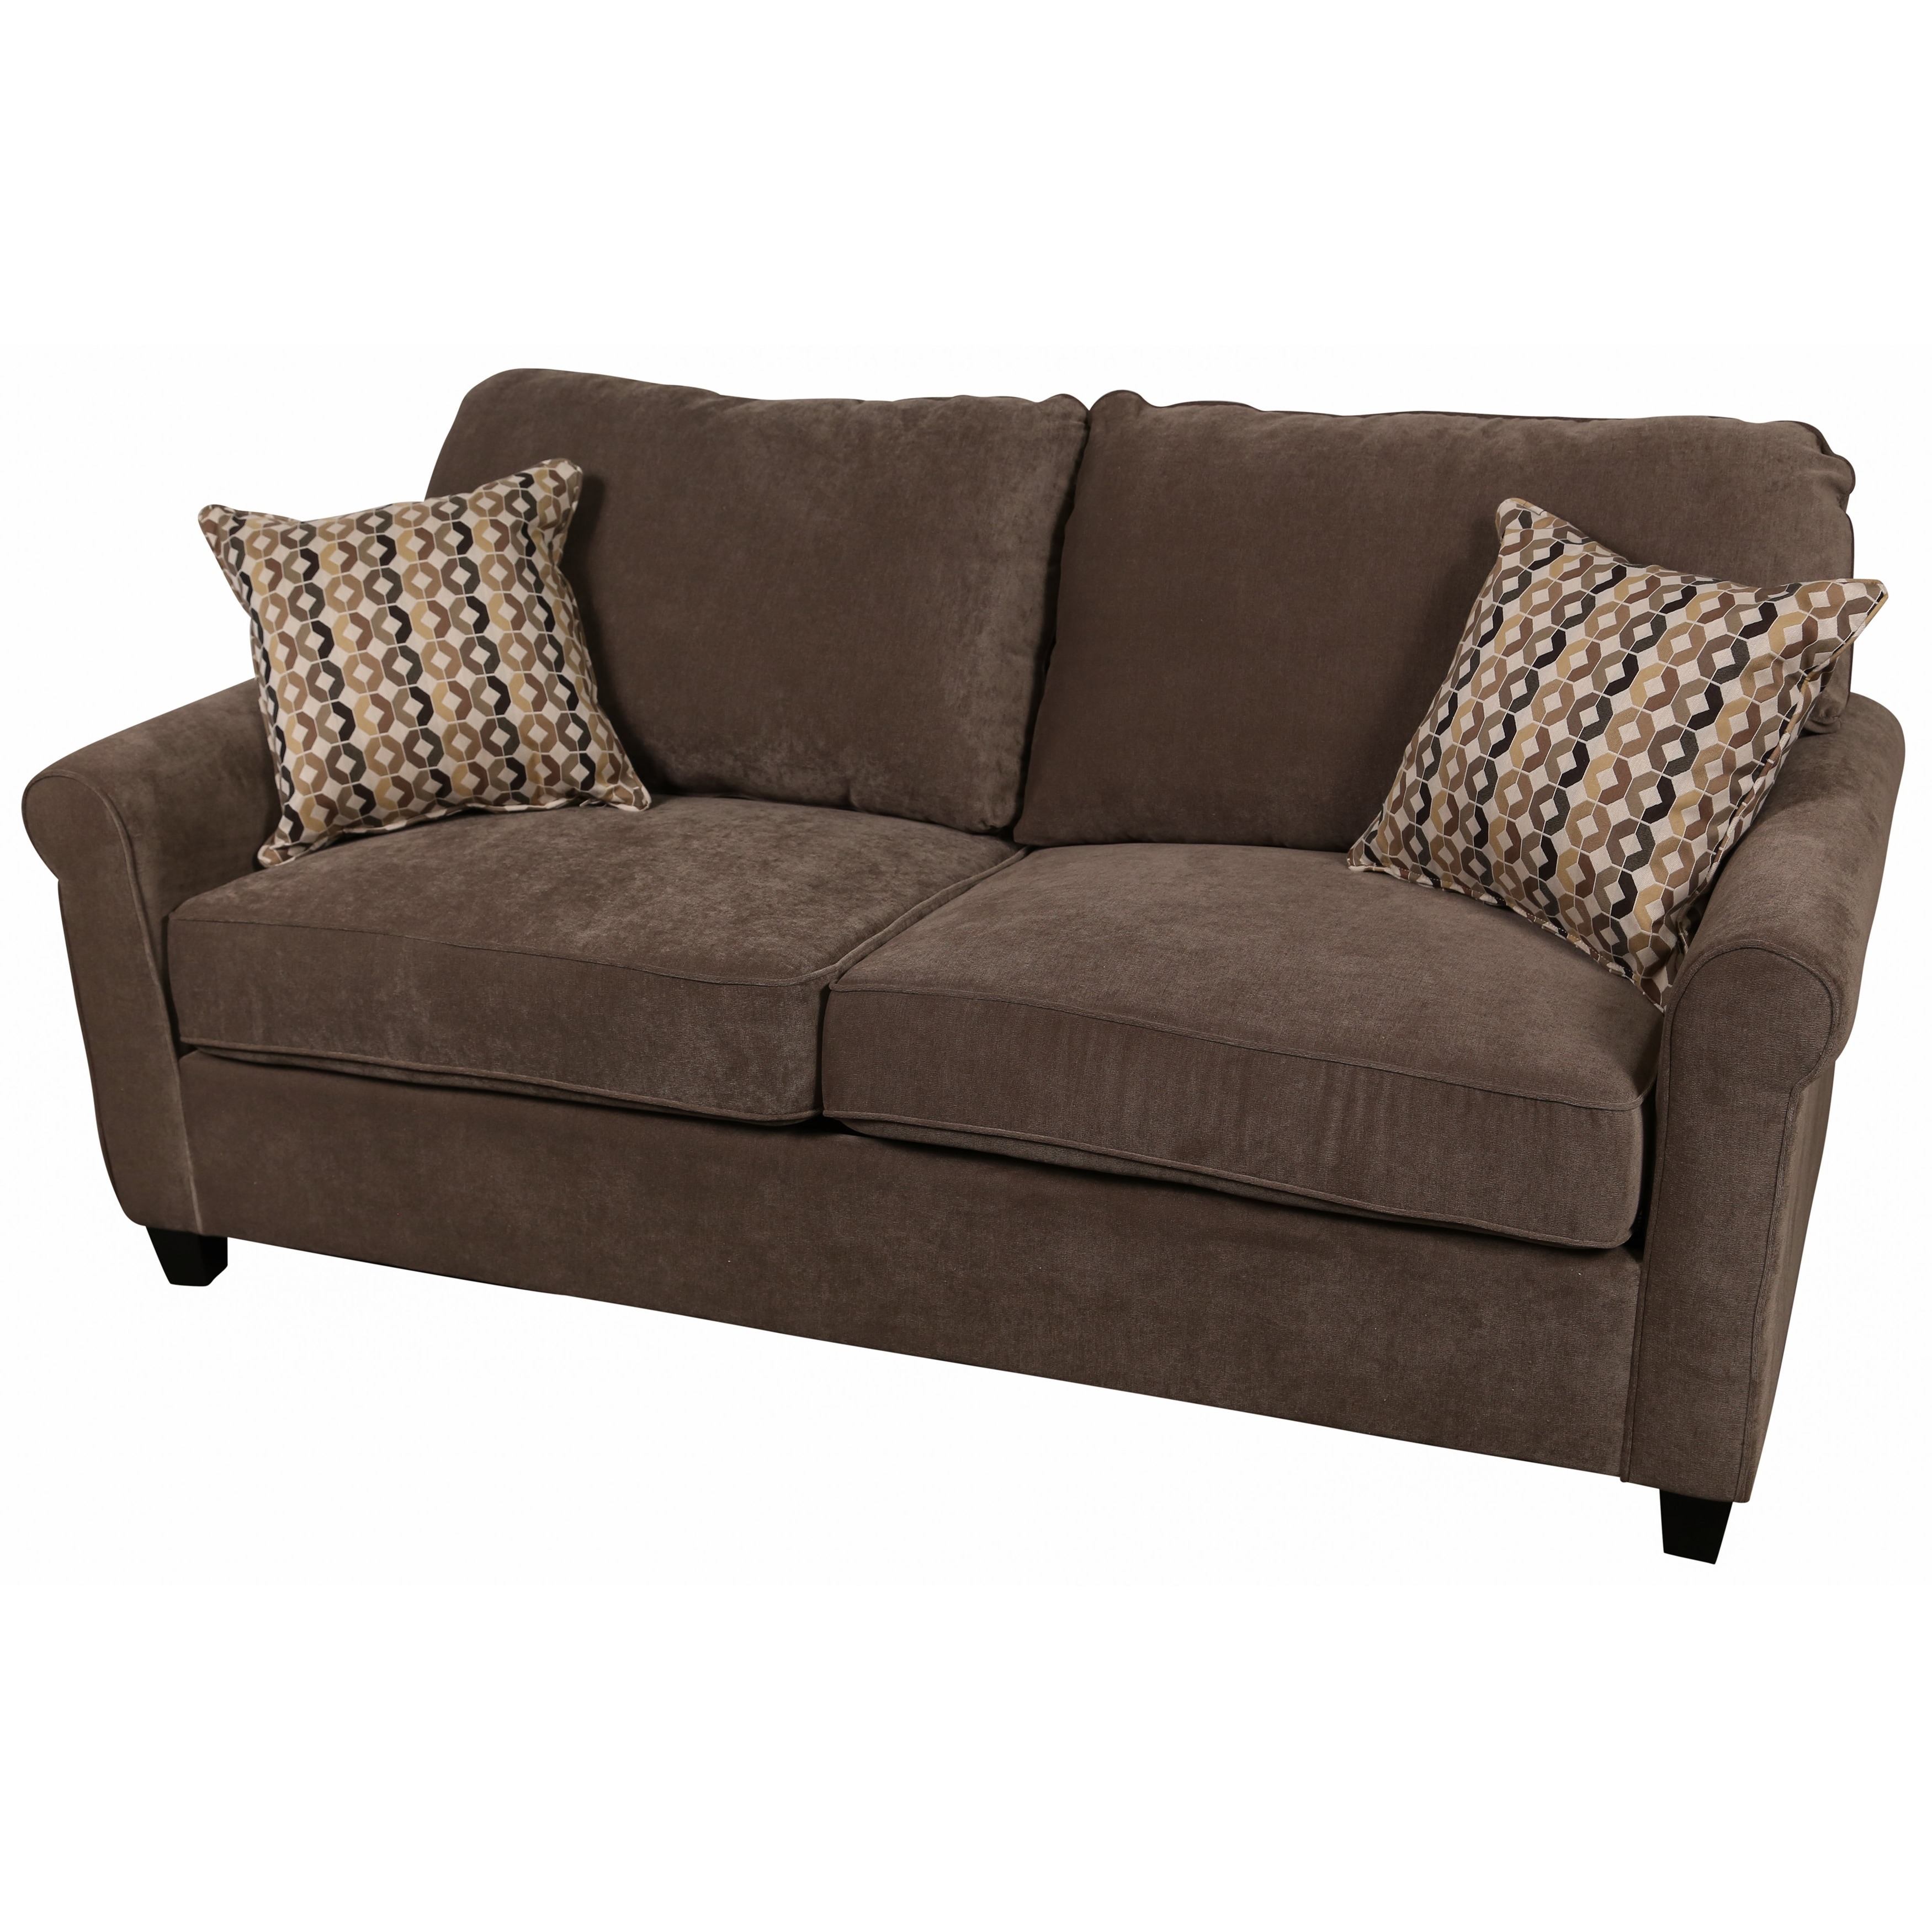 Warm Grey Microfiber Queen Sleeper Sofa